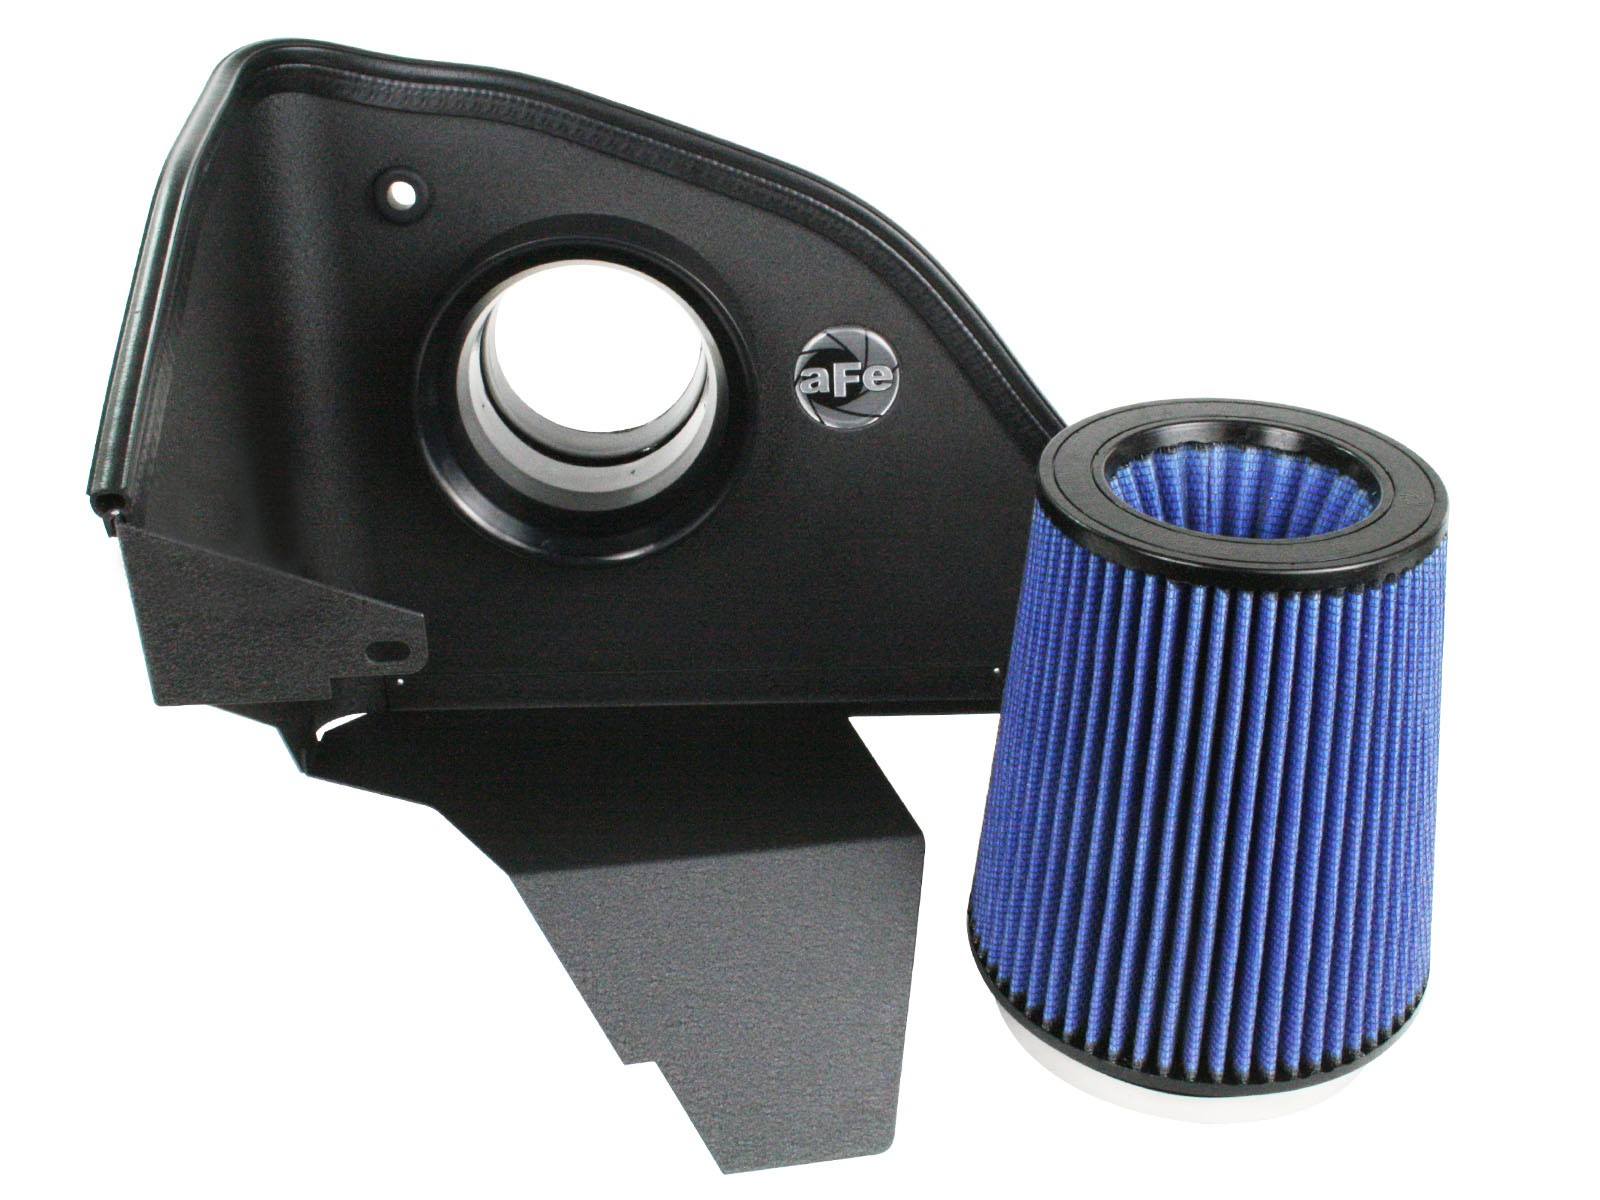 aFe POWER 54-10471 Magnum FORCE Stage-1 Pro 5R Cold Air Intake System